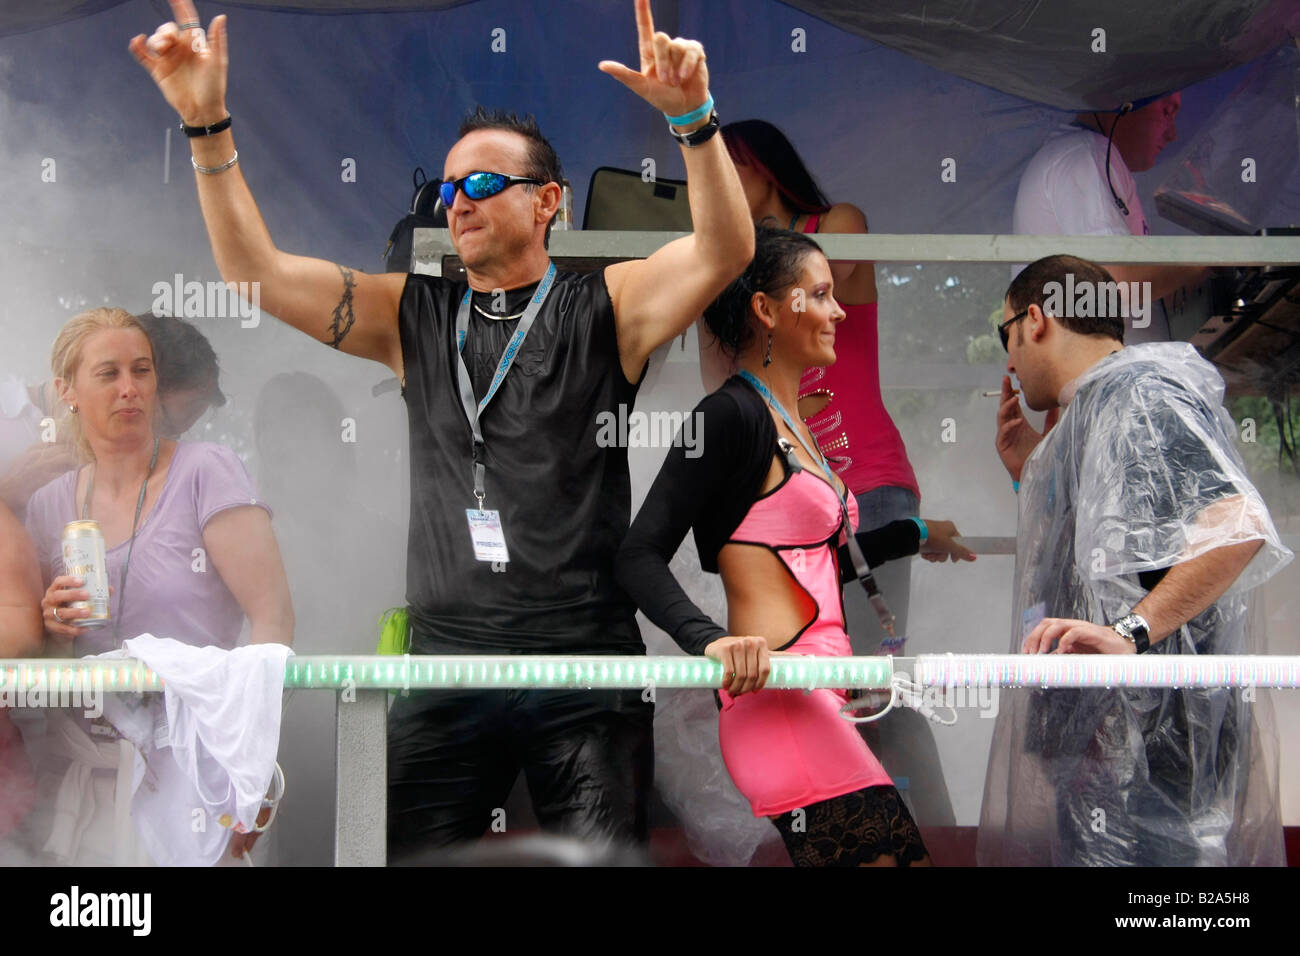 The Love Parade 2008 in Dortmund Germany Stock Photo